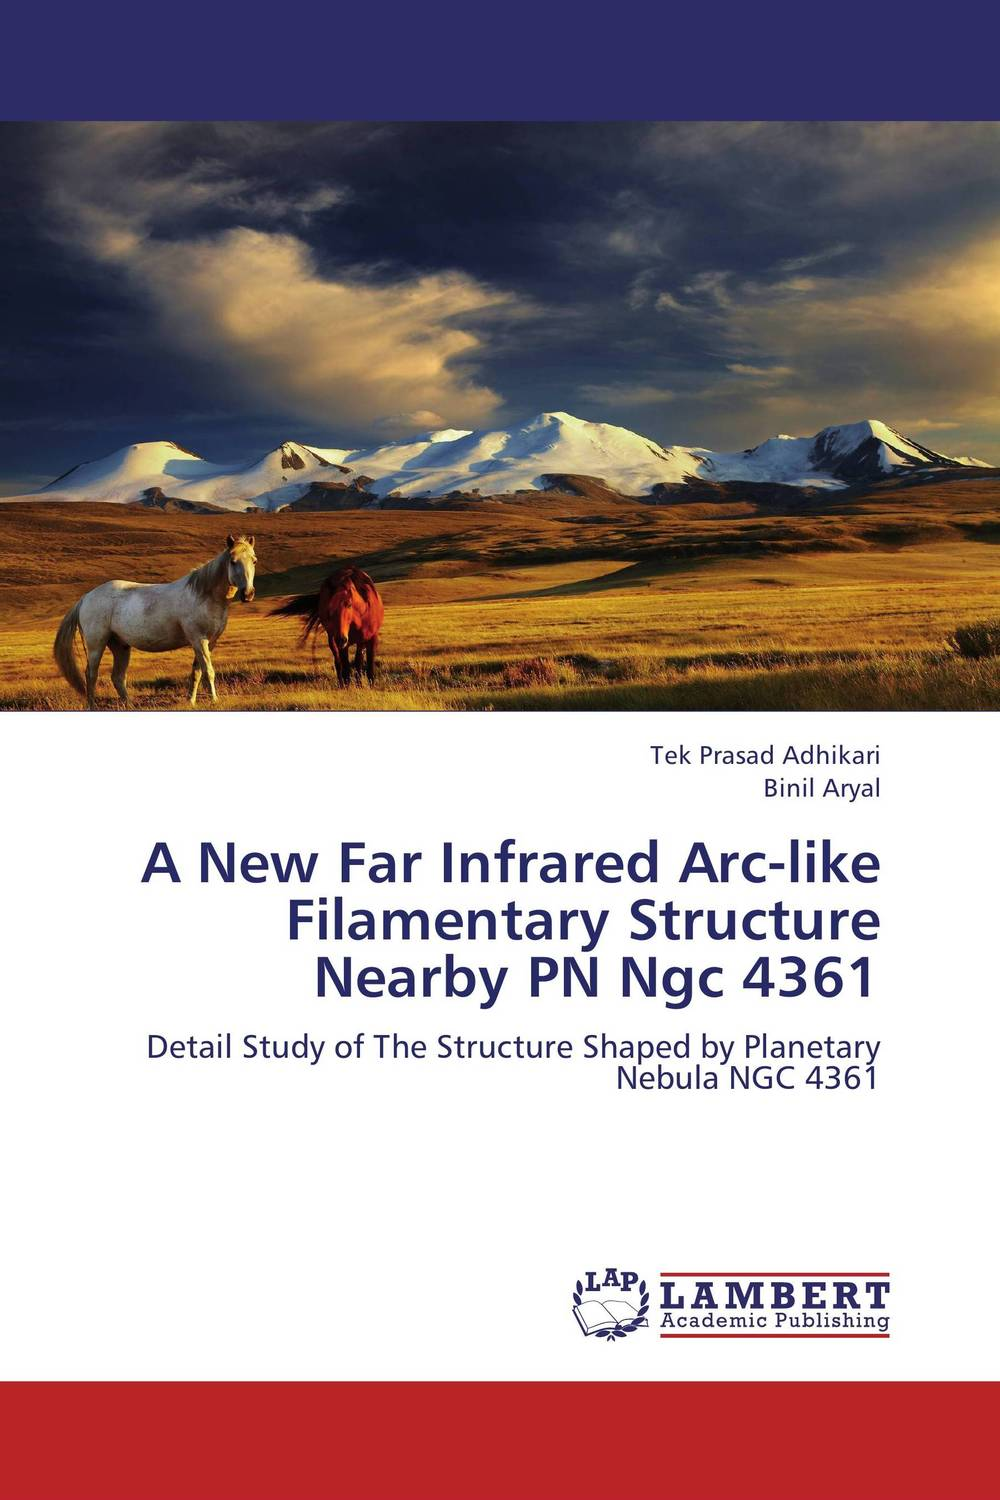 A New Far Infrared Arc-like Filamentary Structure Nearby PN Ngc 4361 http